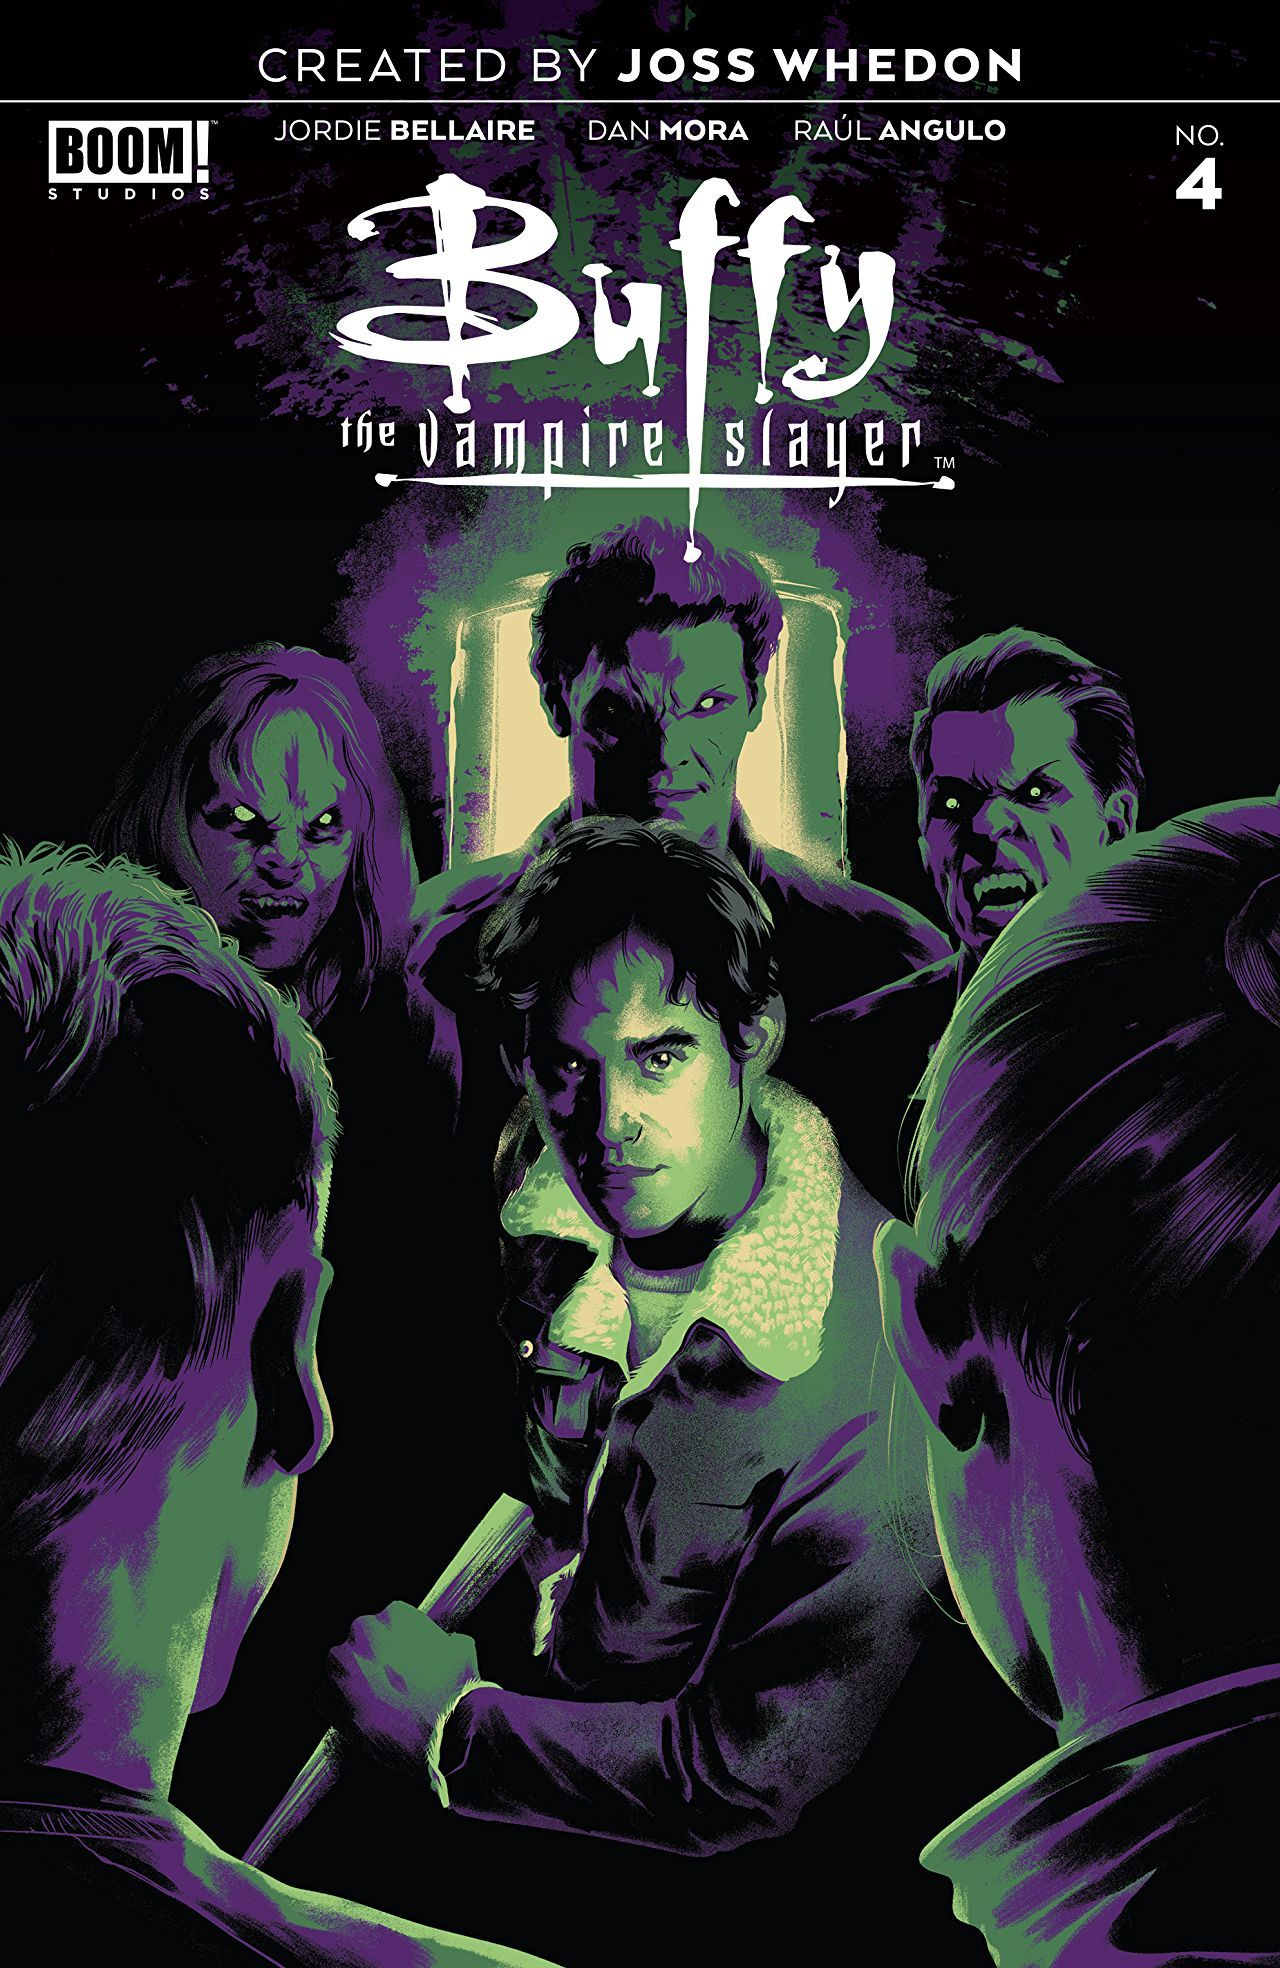 Buffy the Vampire Slayer #4 Plays to the Franchise's Strengths